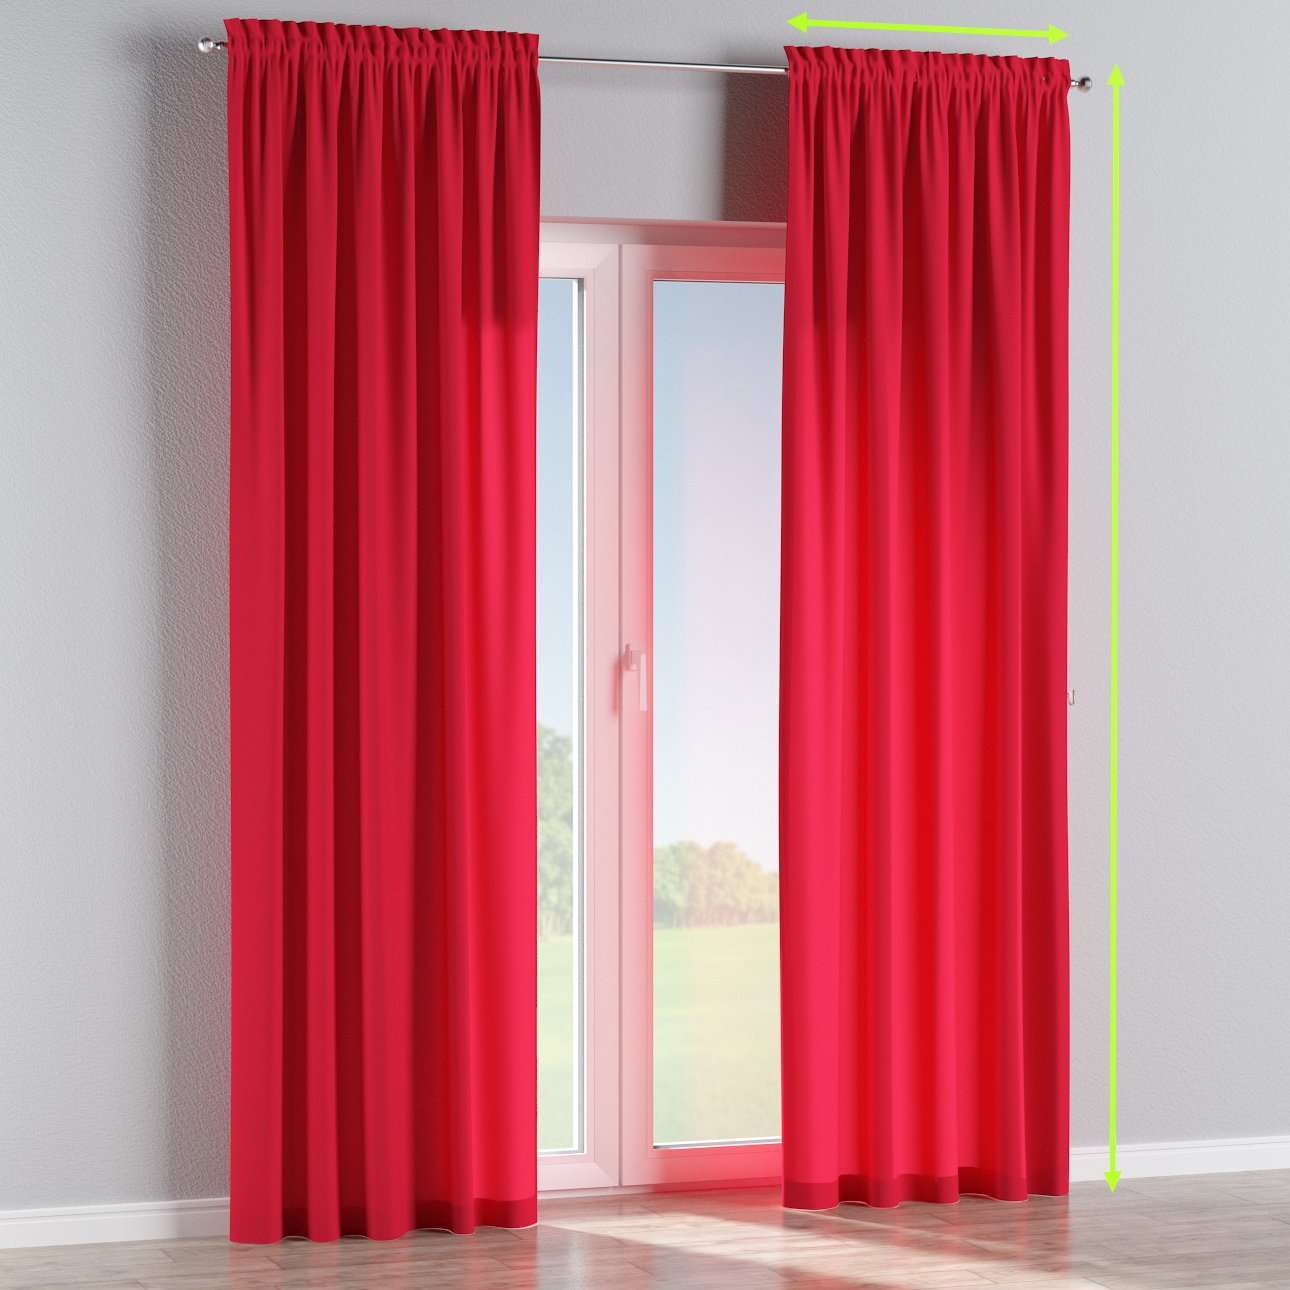 Slot and frill lined curtains in collection Quadro, fabric: 136-19